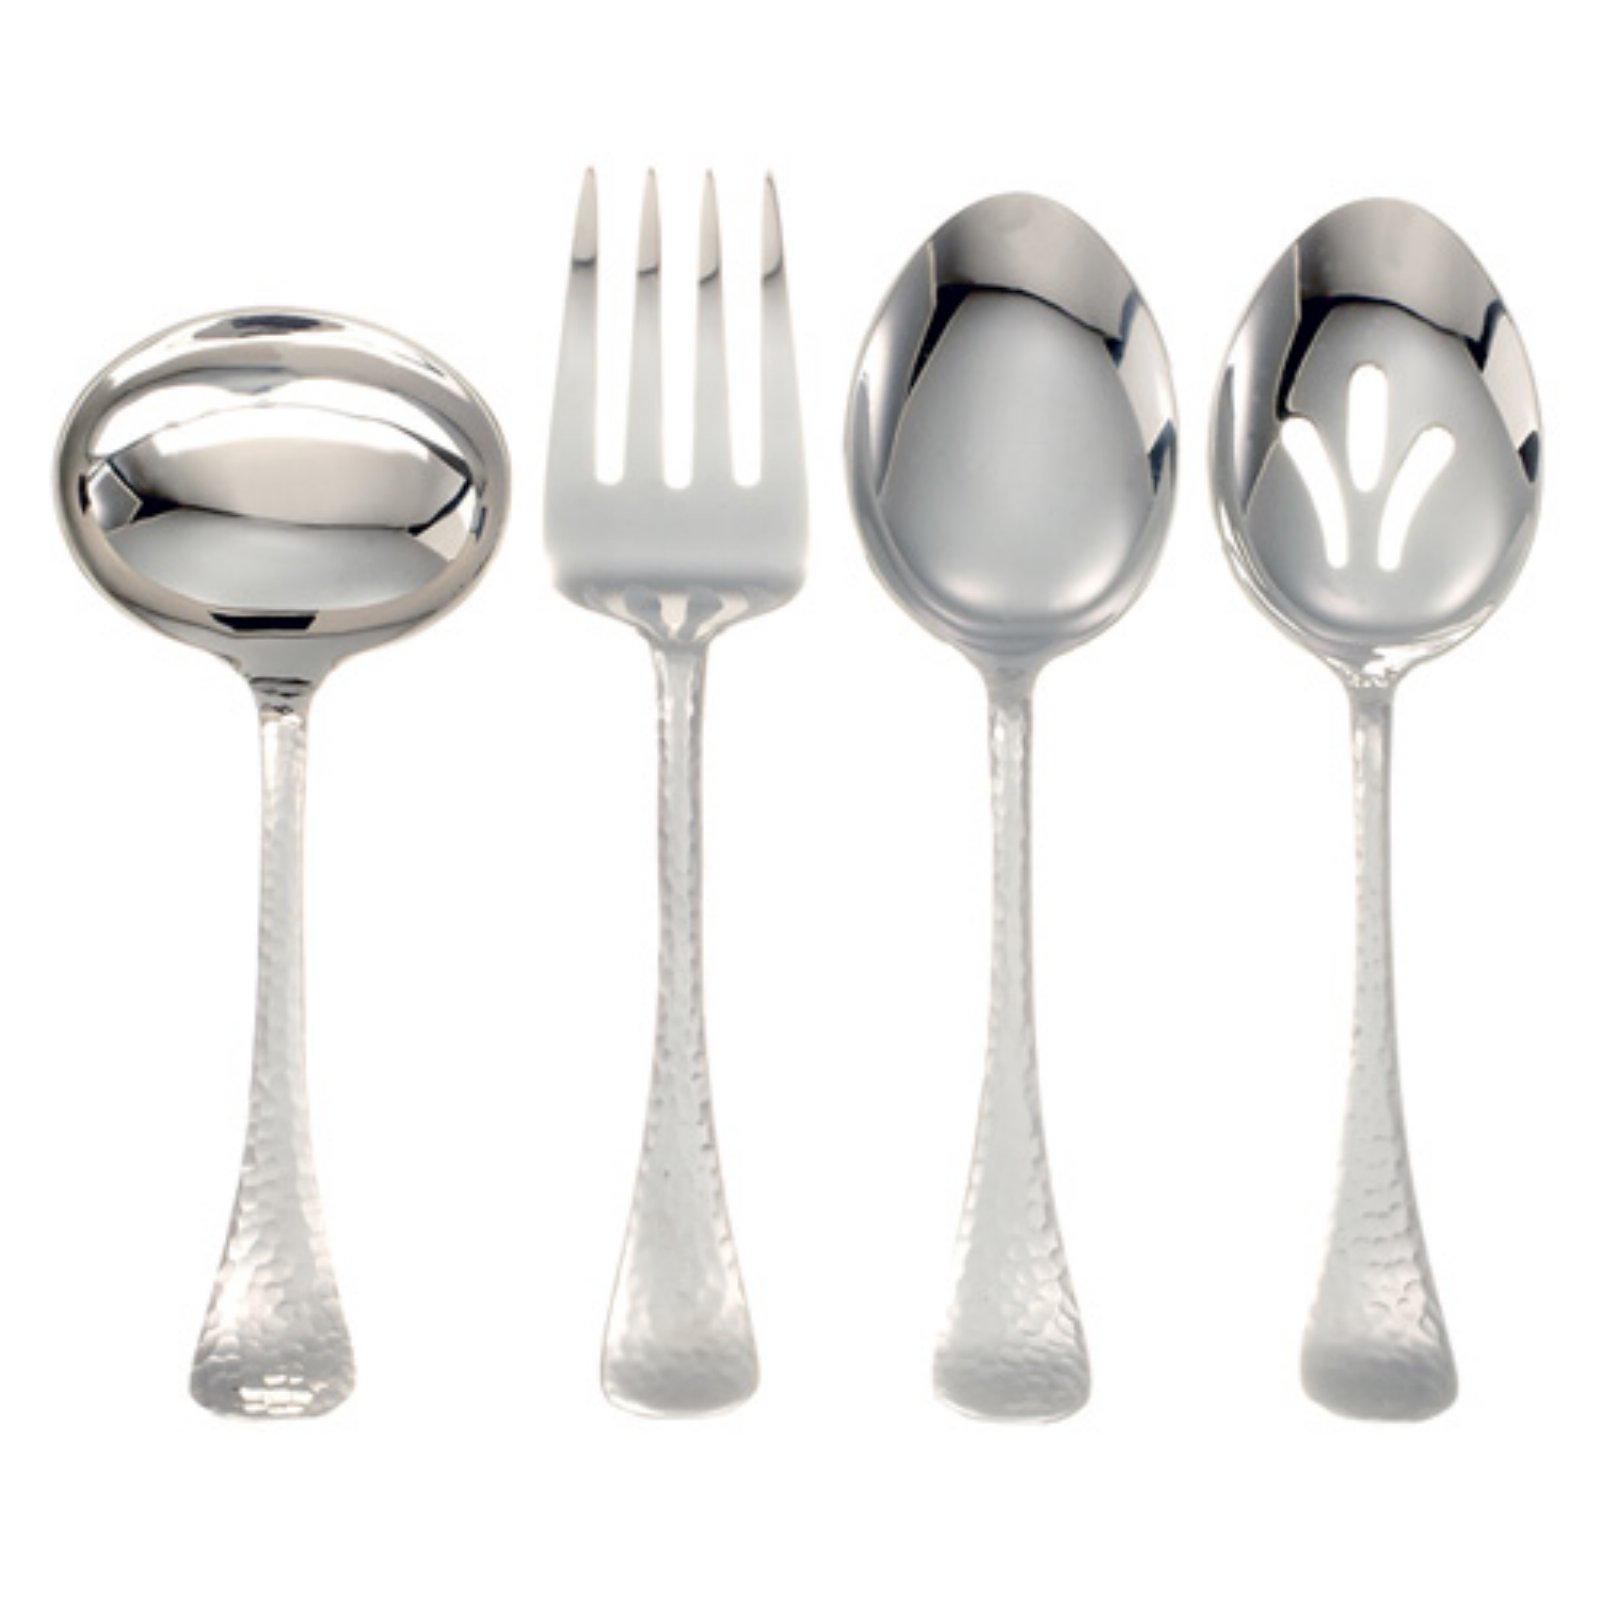 Ginkgo Lafayette Stainless Hammered Finish Flatware Hostess Set - Set of 4